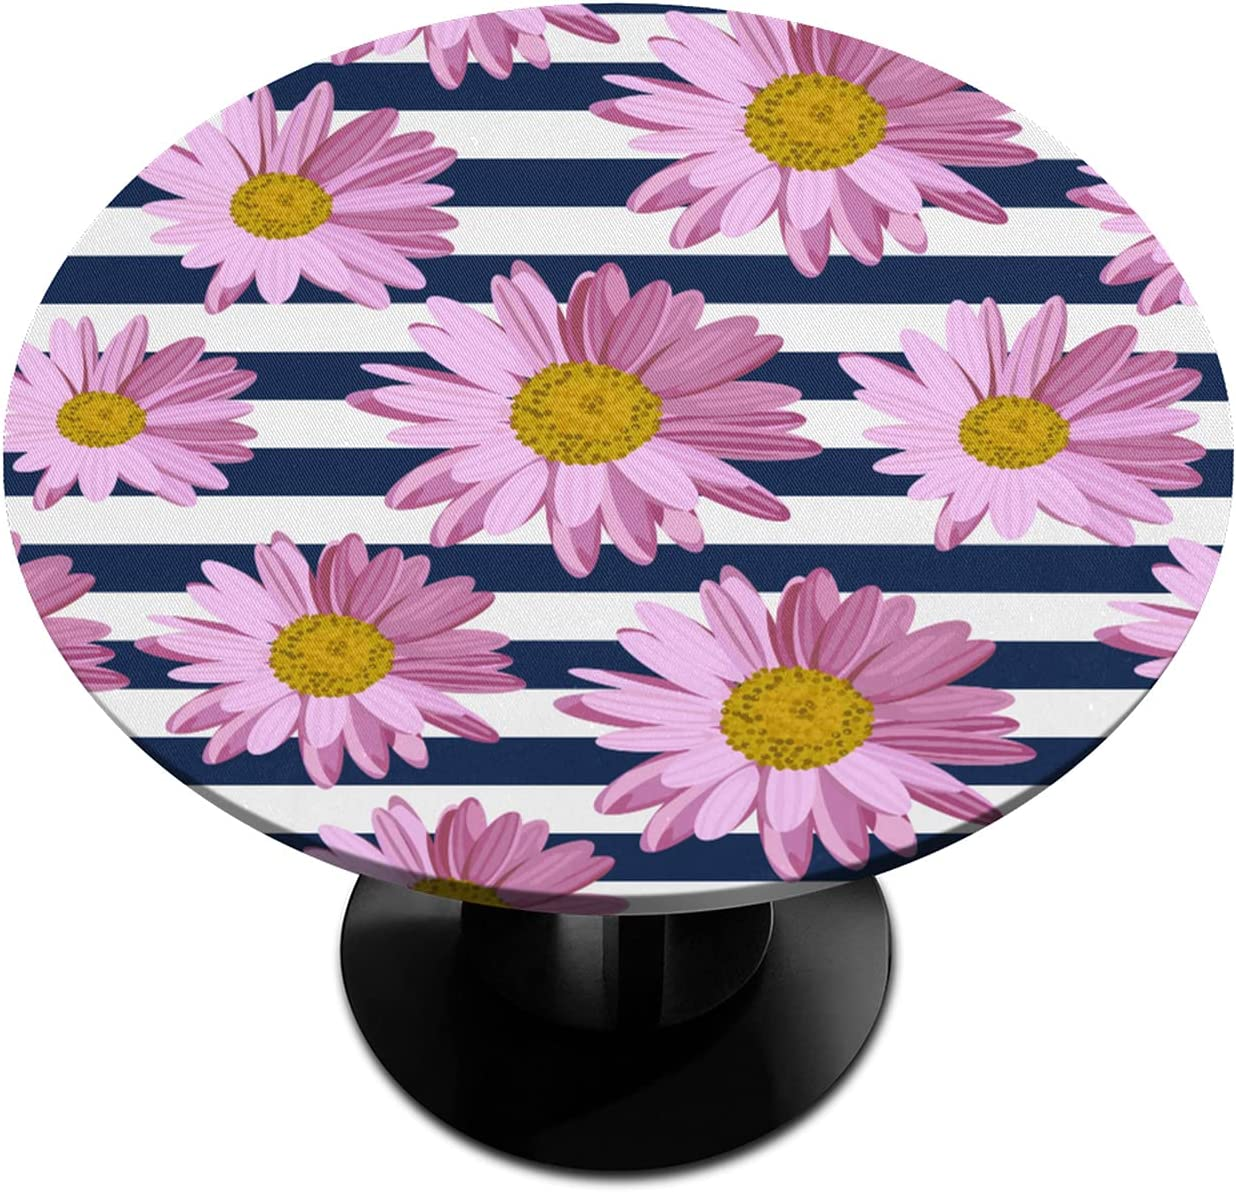 Round Fitted Tablecloth Safety and trust with Elastic Edged Genuine Flower Daisy Stripe